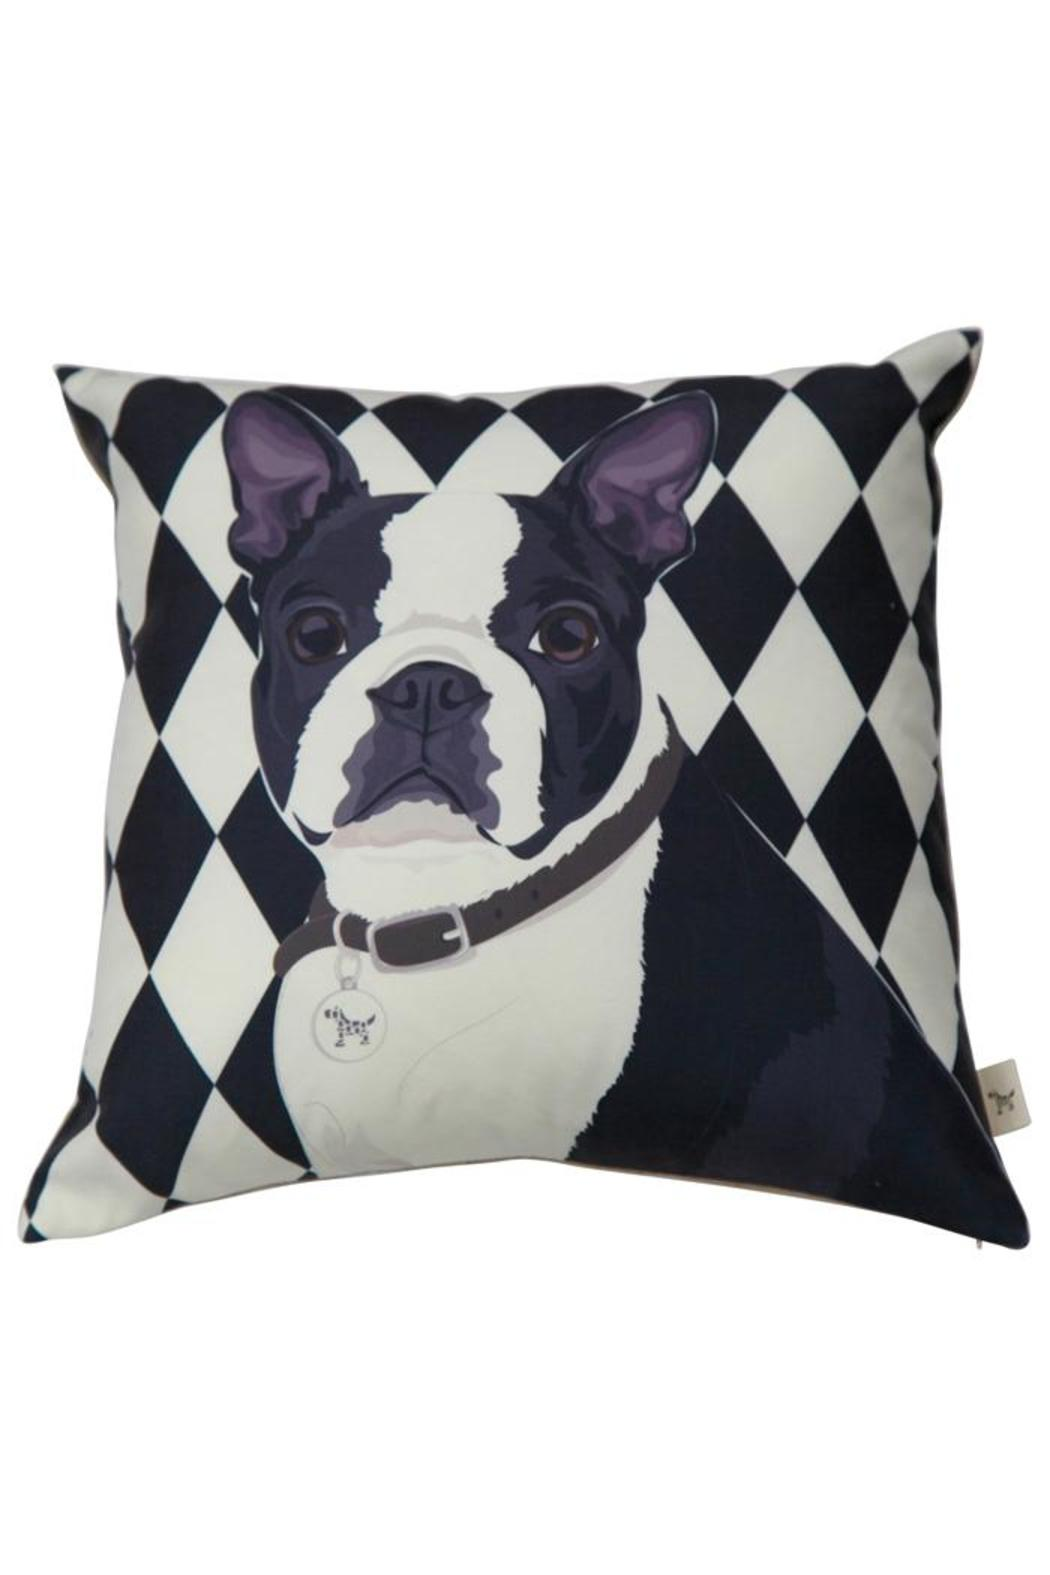 dogolove boston terrier pillow from california by dogo love  - dogolove boston terrier pillow  front cropped image